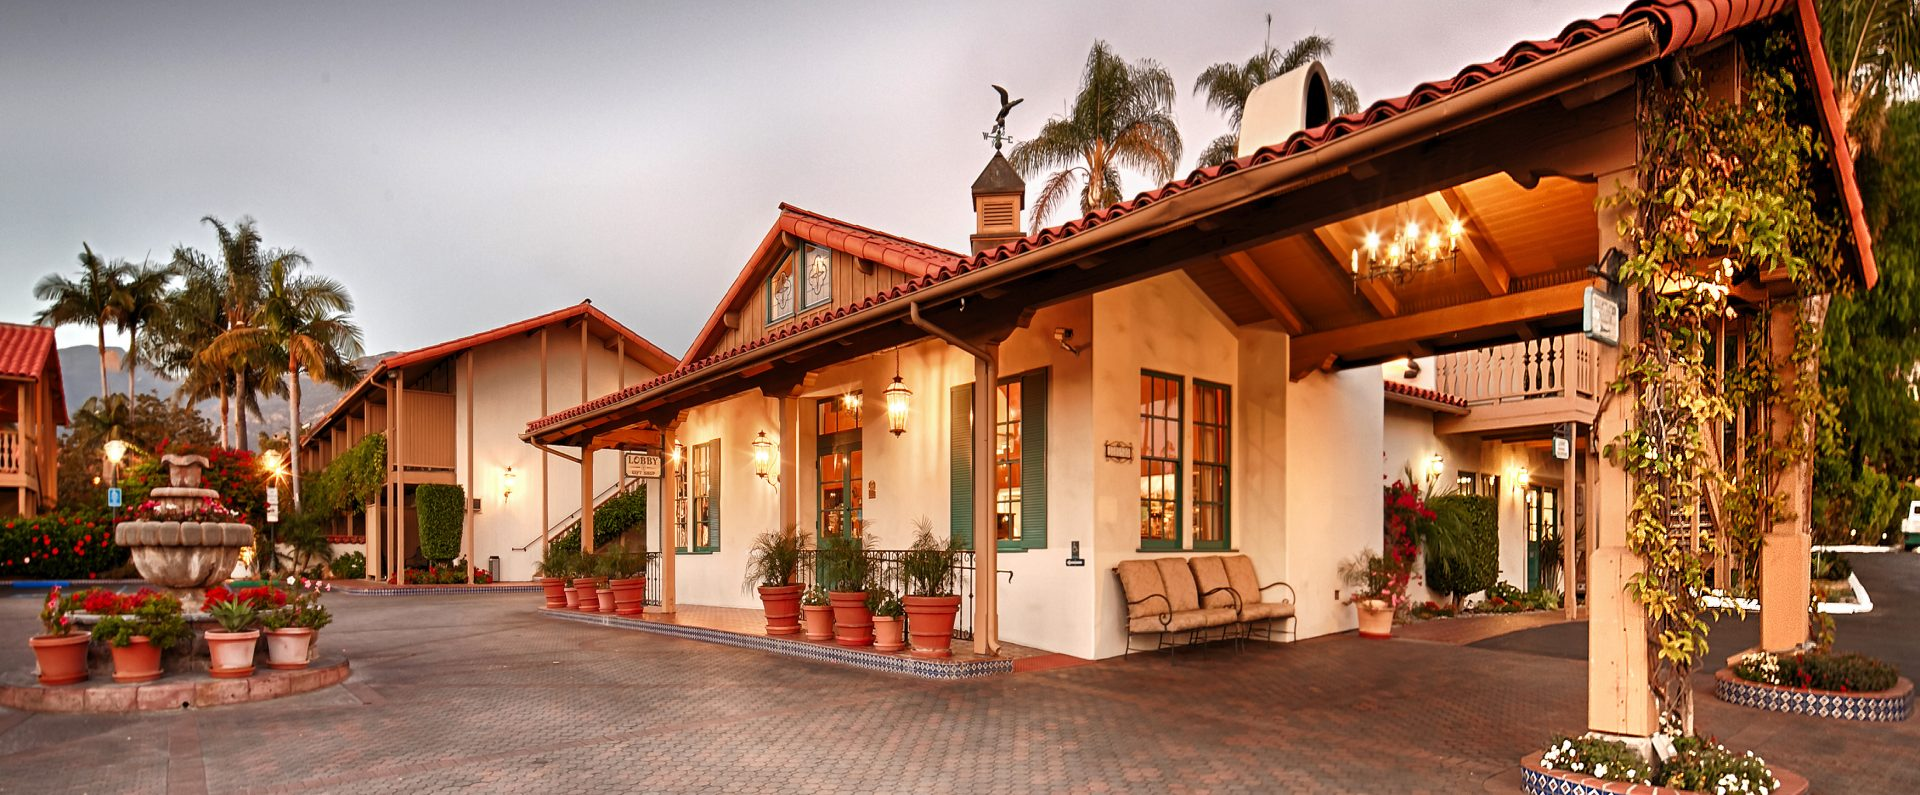 Spanish style Best Western Plus Pepper Tree Inn in Santa Barbara